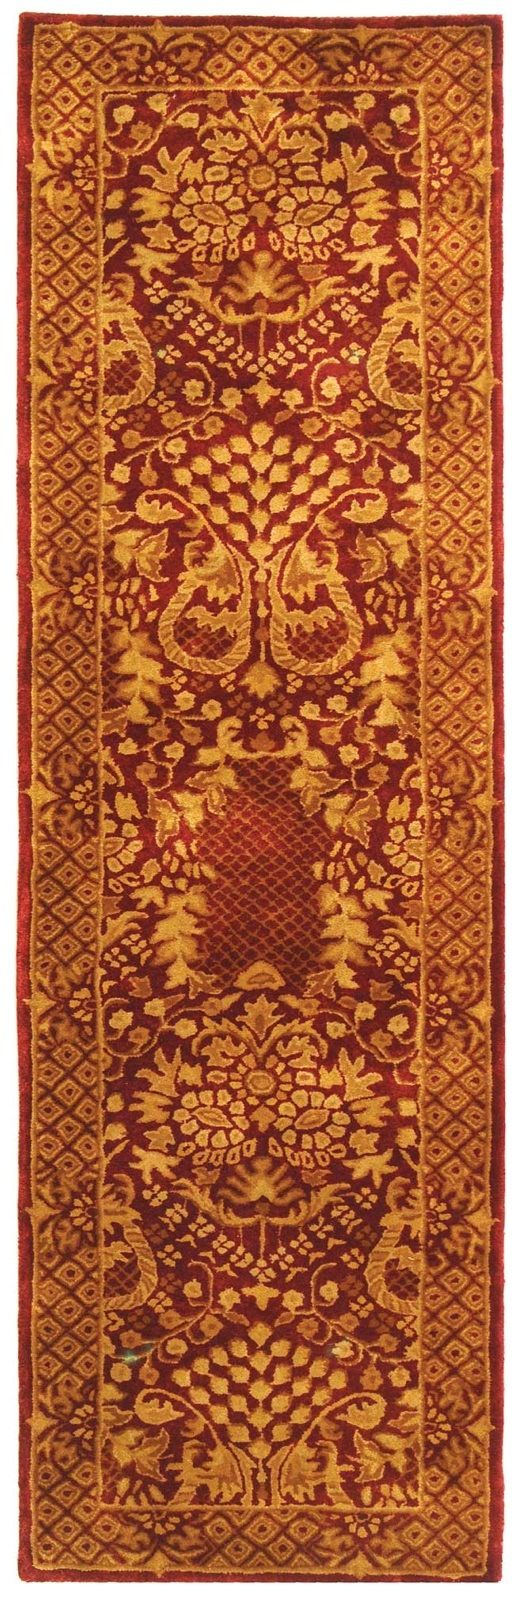 safavieh imperial traditional area rug collection